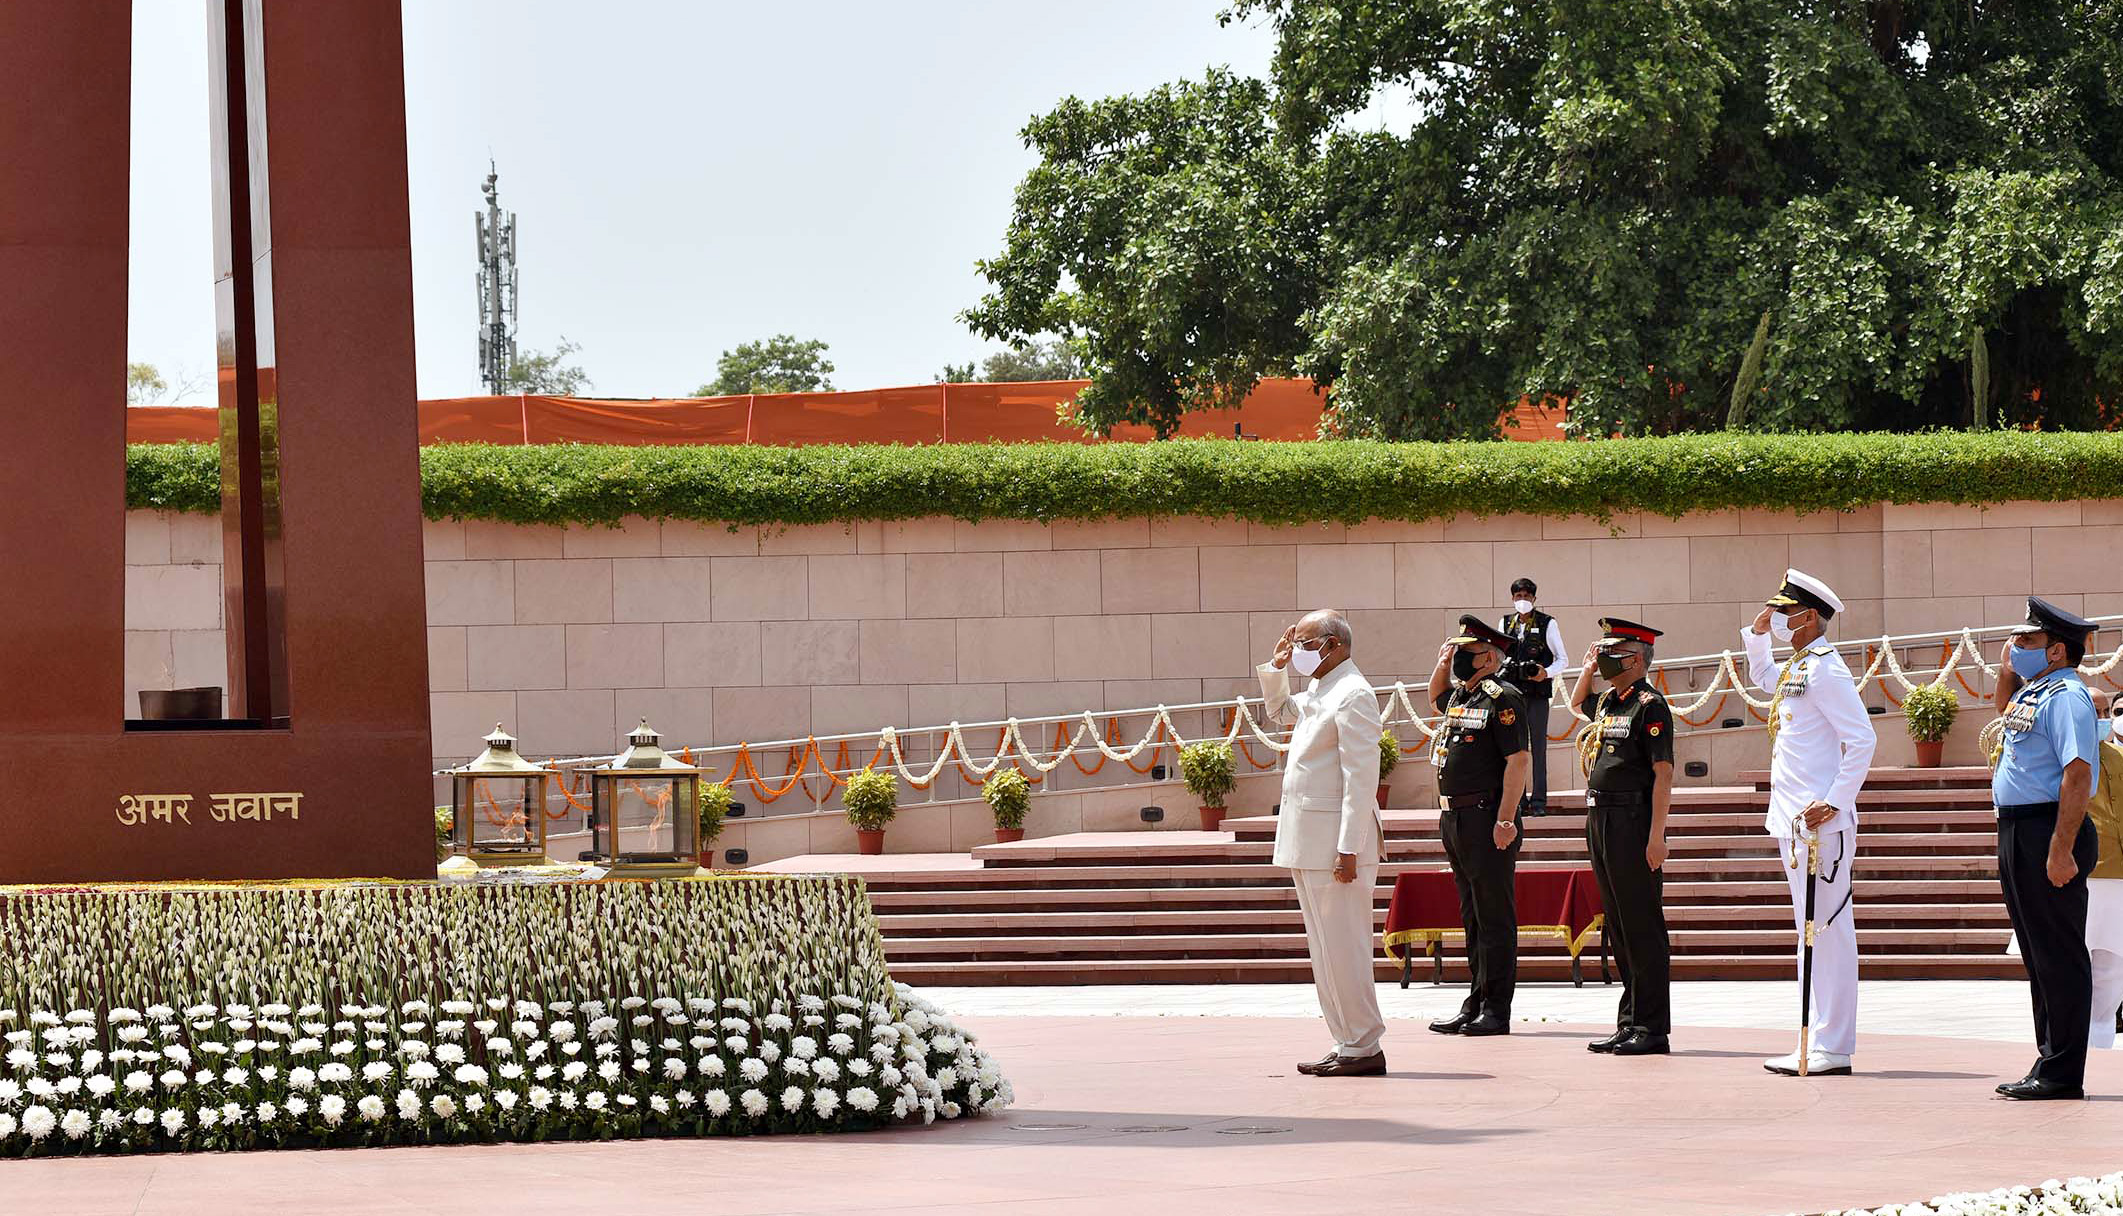 President Ram Nath Kovind paying homage at the National War Memorial, on the 75th Independence Day, in New Delhi on August 15, 2021